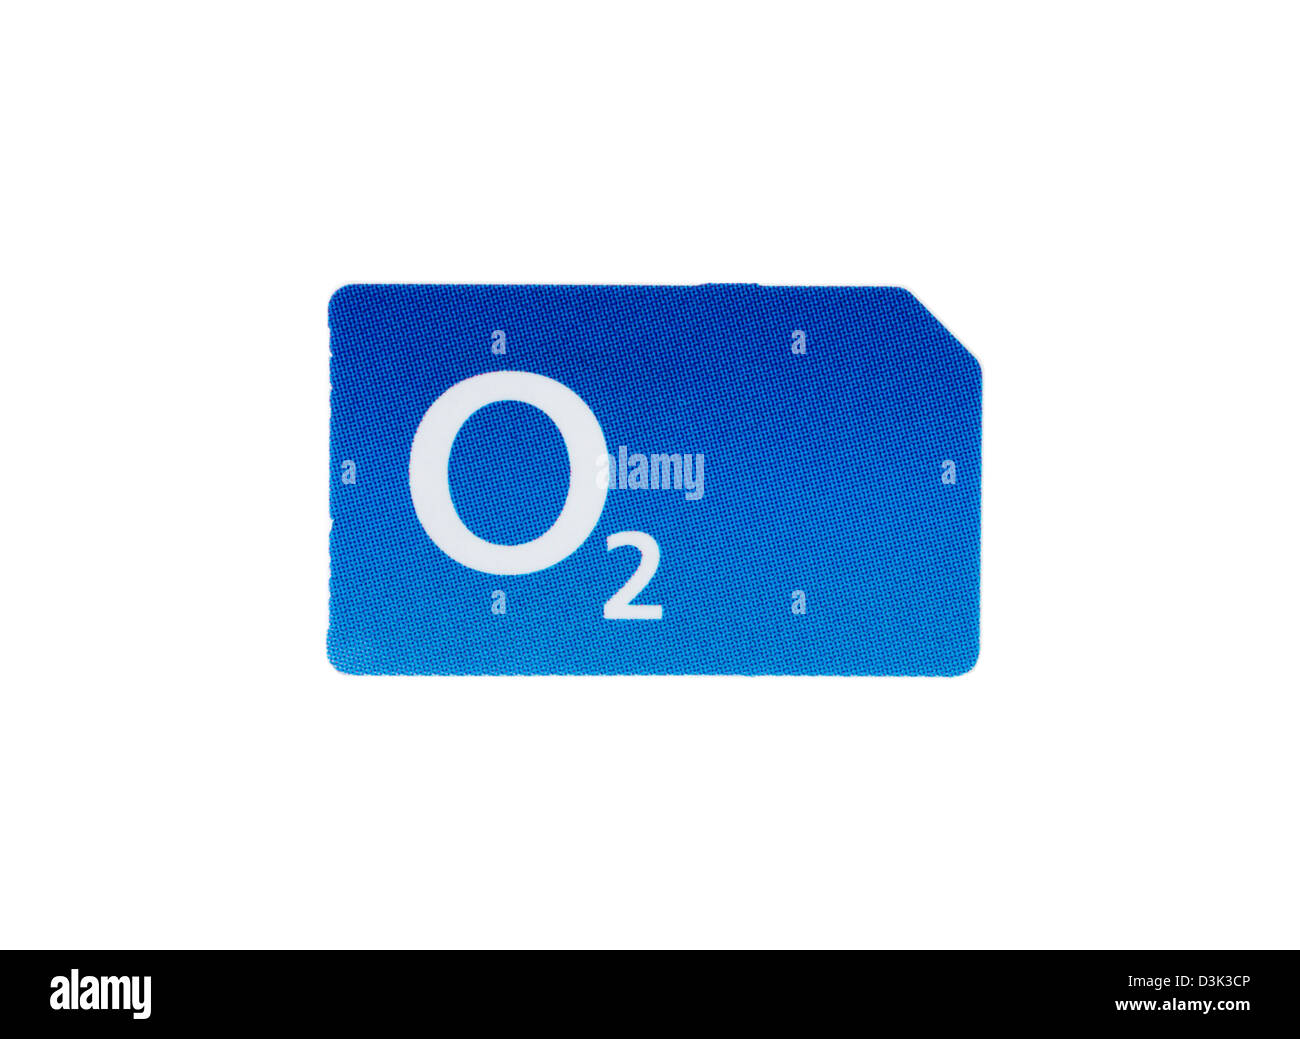 An O2 SIM card for a mobile phone - Stock Image